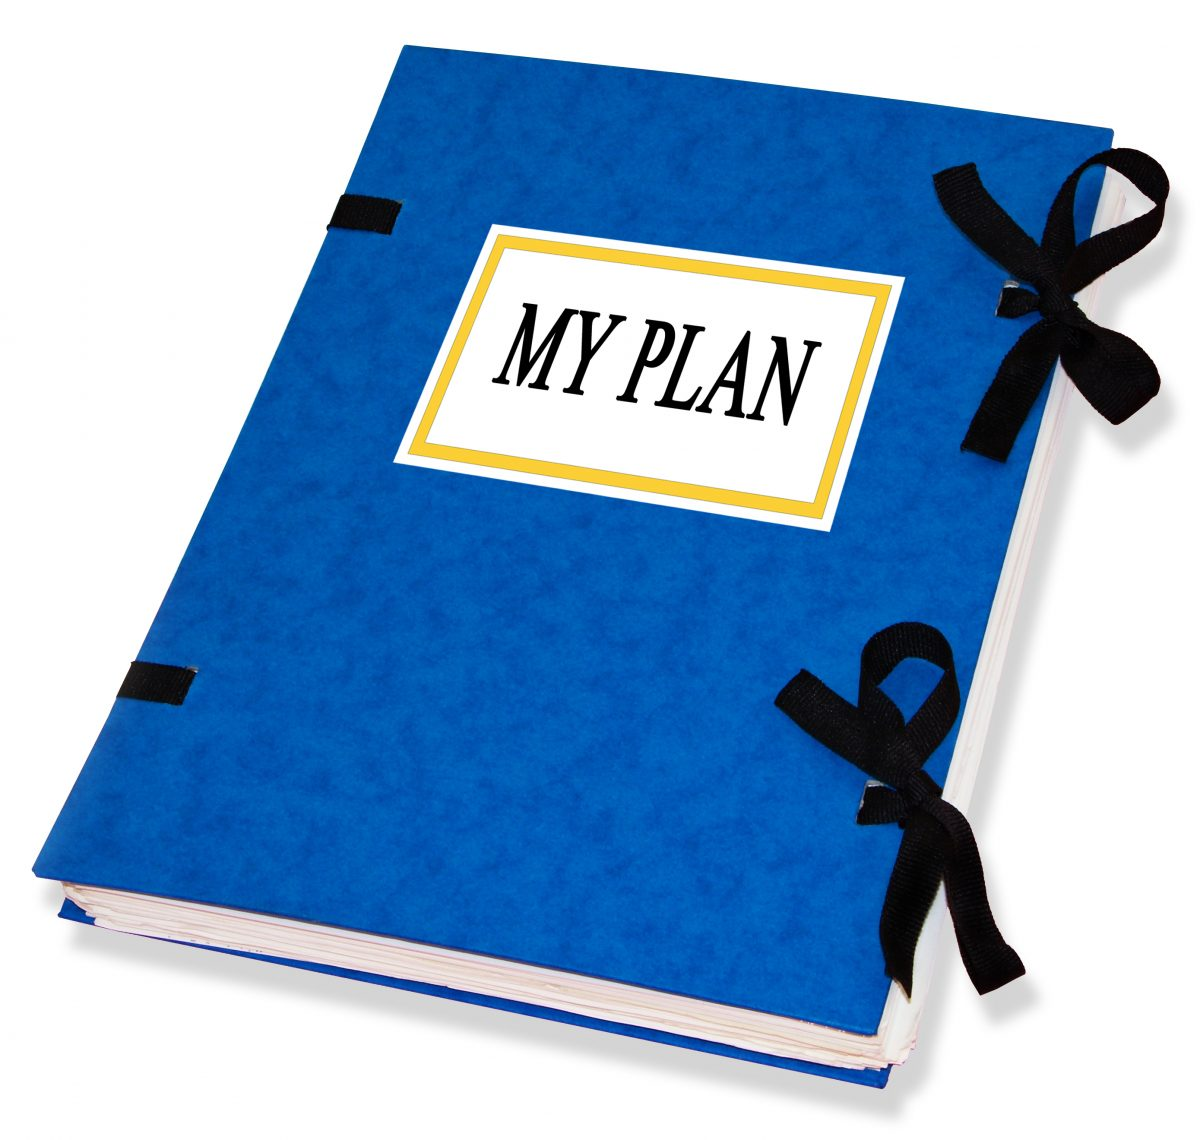 A blue book with the My Plan on the front